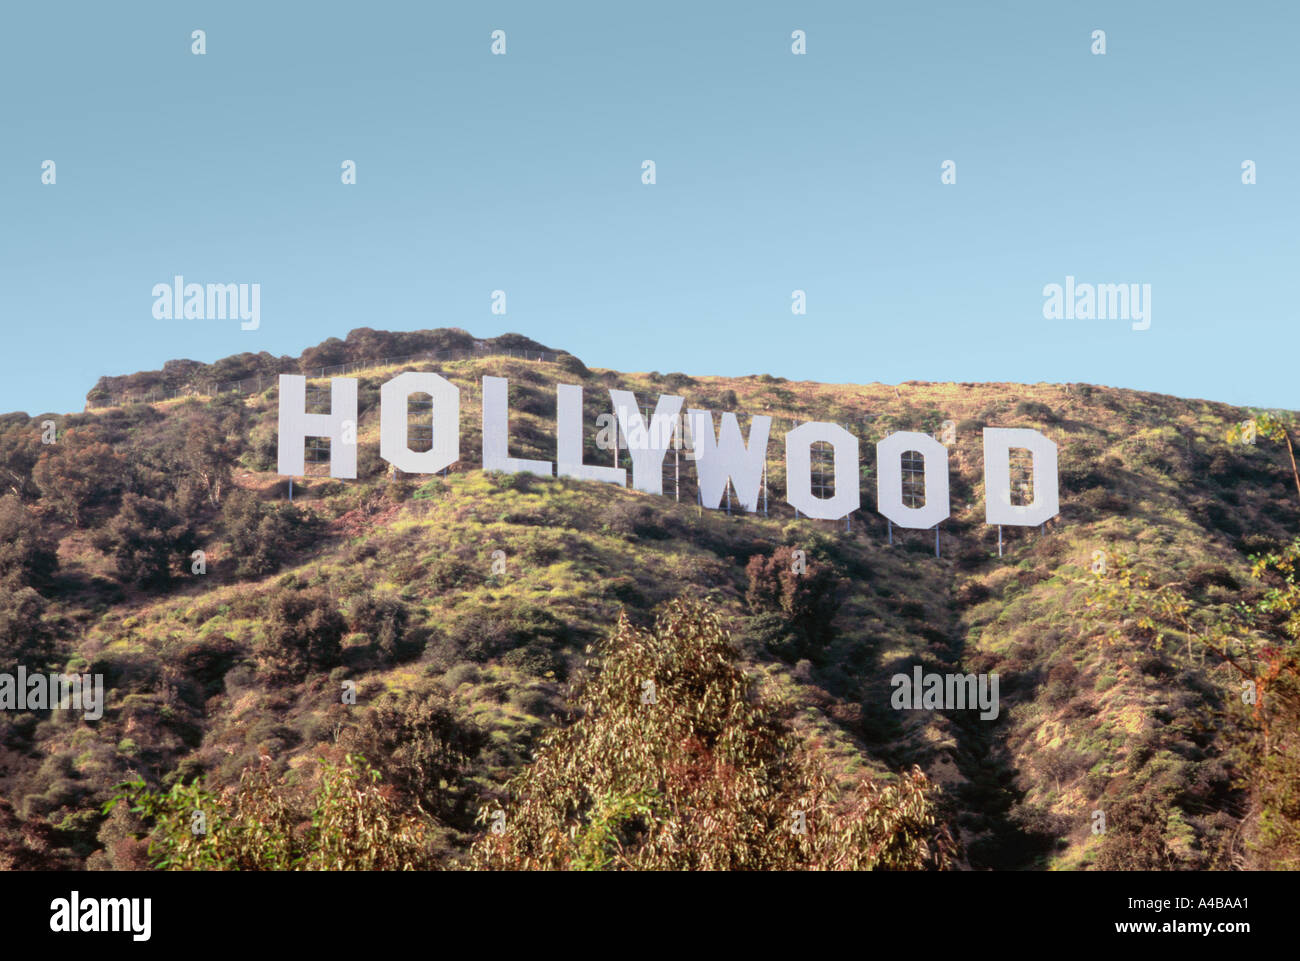 Hollywood Sign Los Angeles - Stock Image